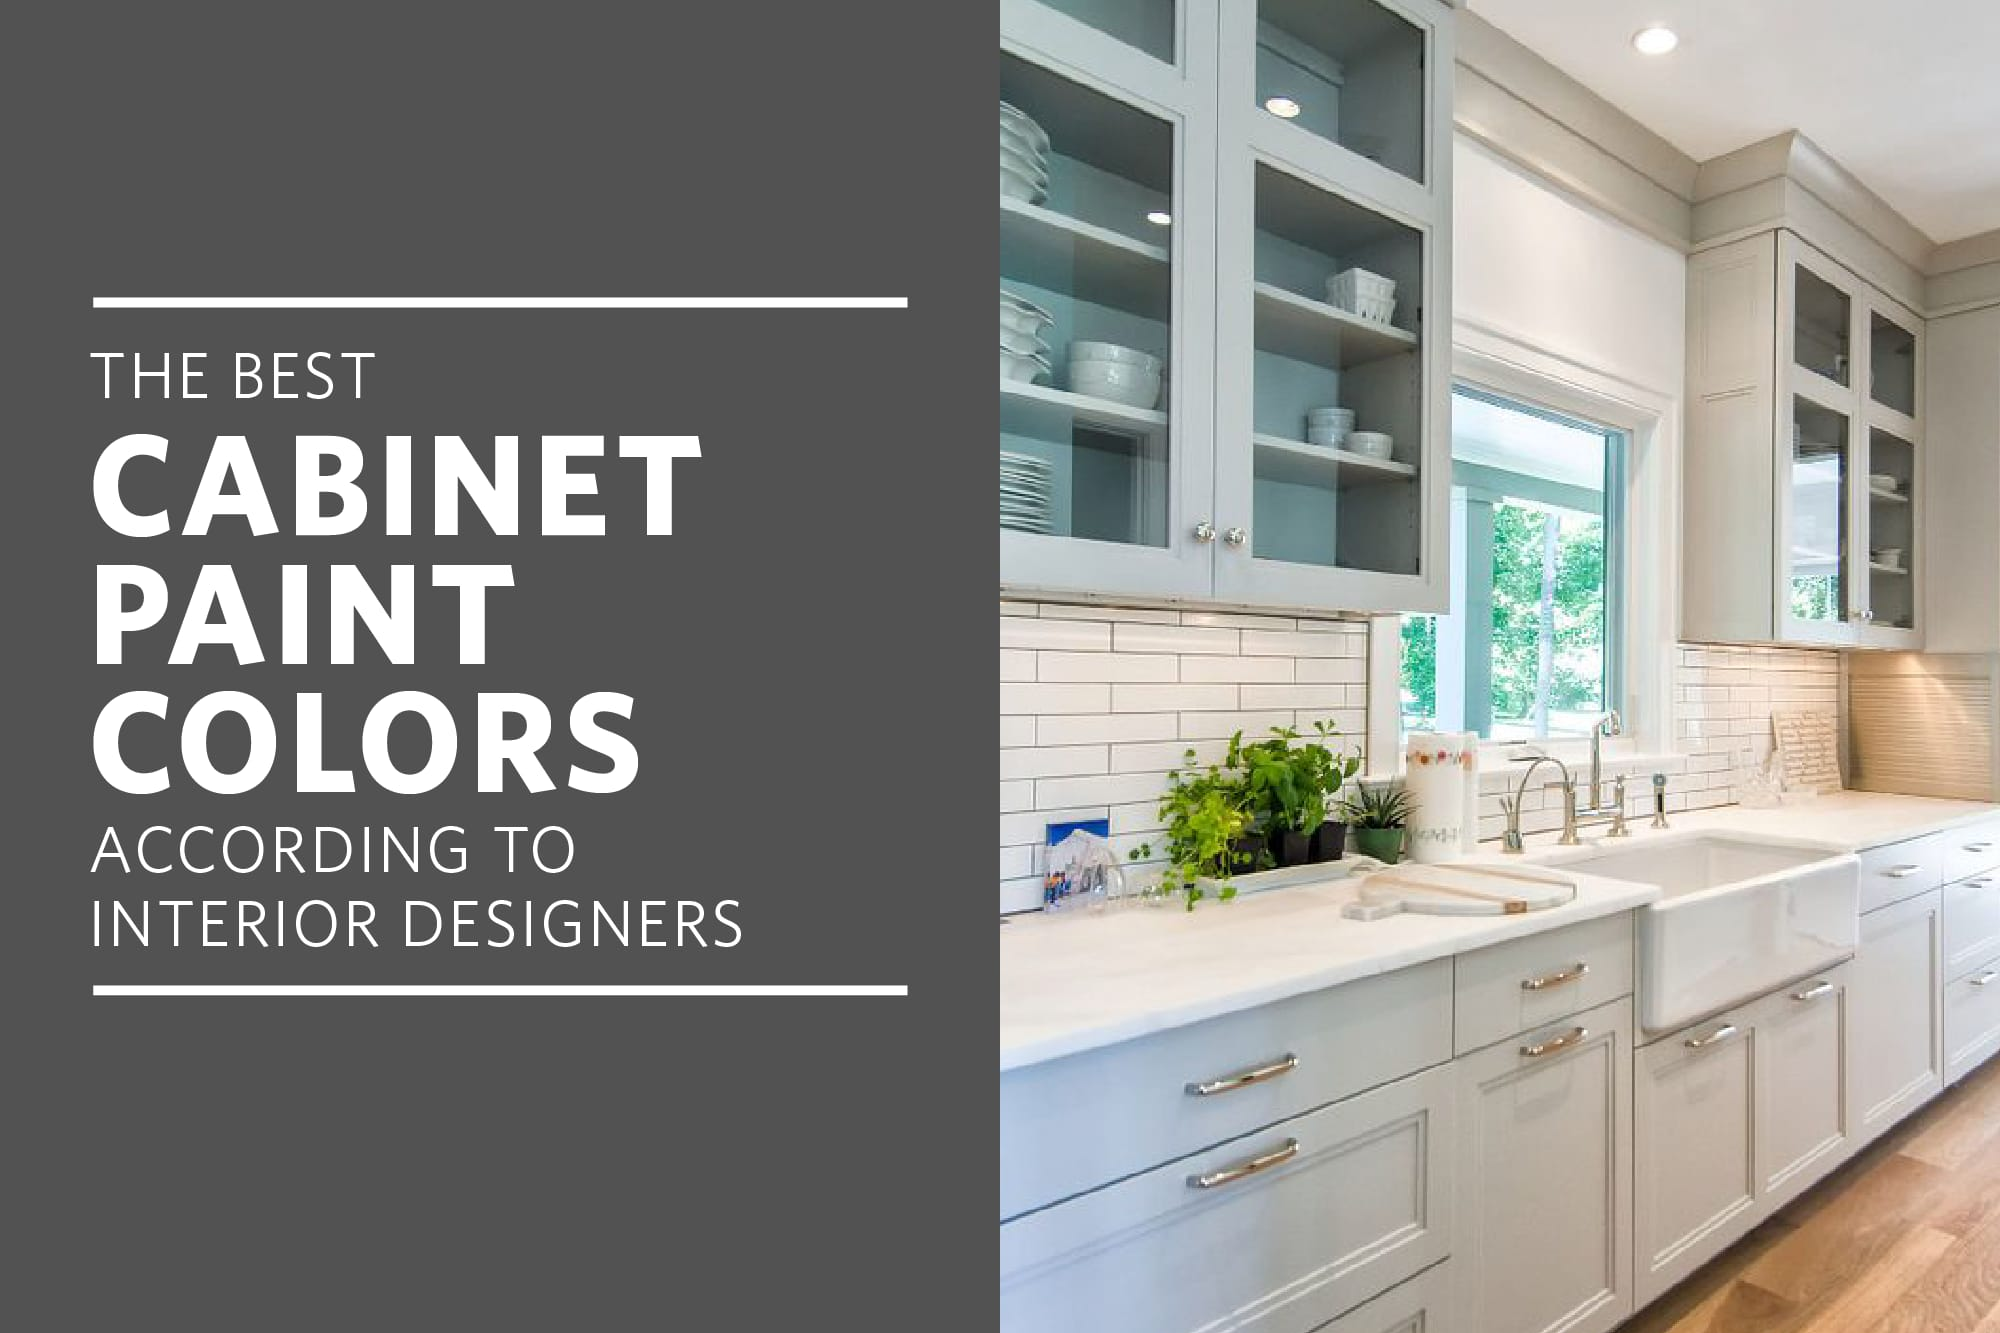 The Best Cabinet Paint Colors For A Happier Kitchen According To